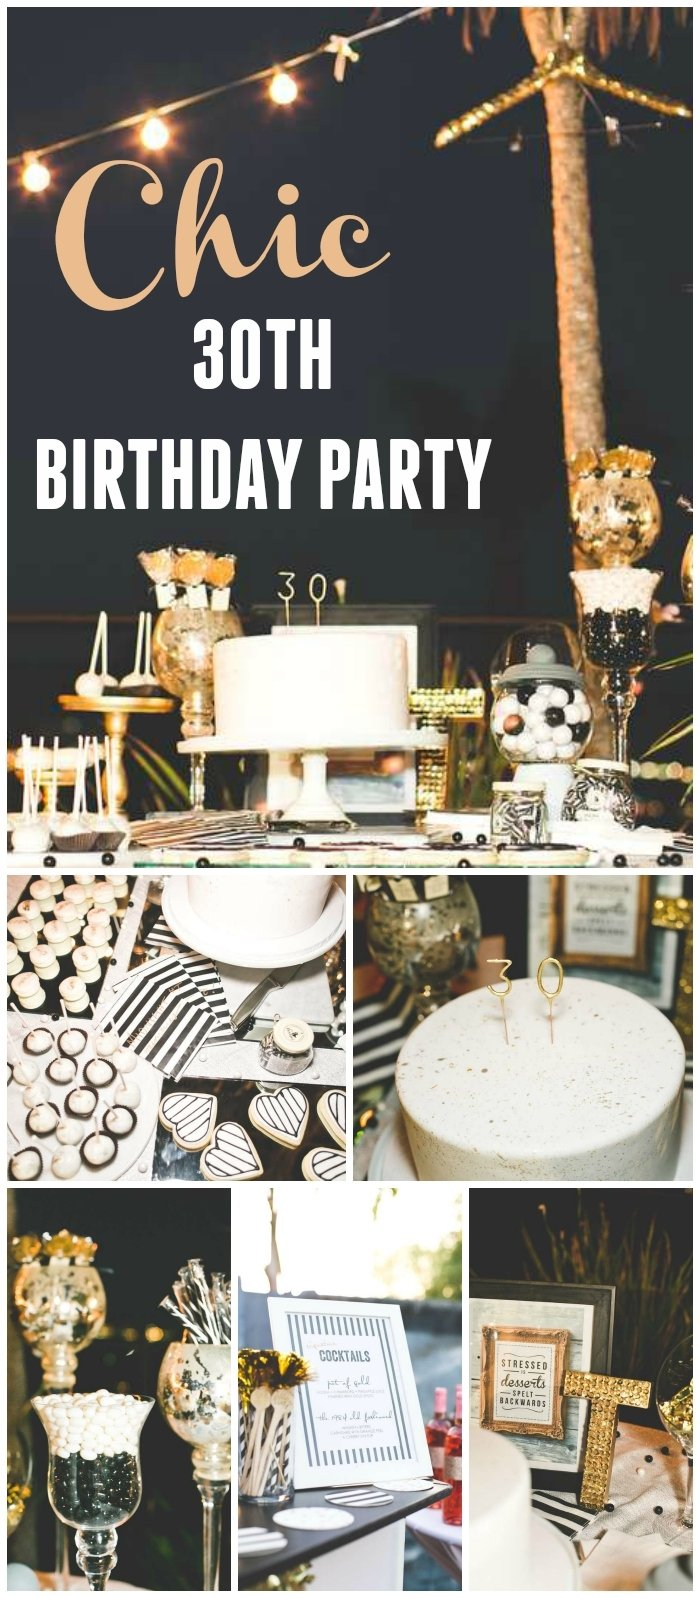 10 Gorgeous Party Ideas For 30Th Birthday stripes glitter birthday chic black white gold 30th birthday 6